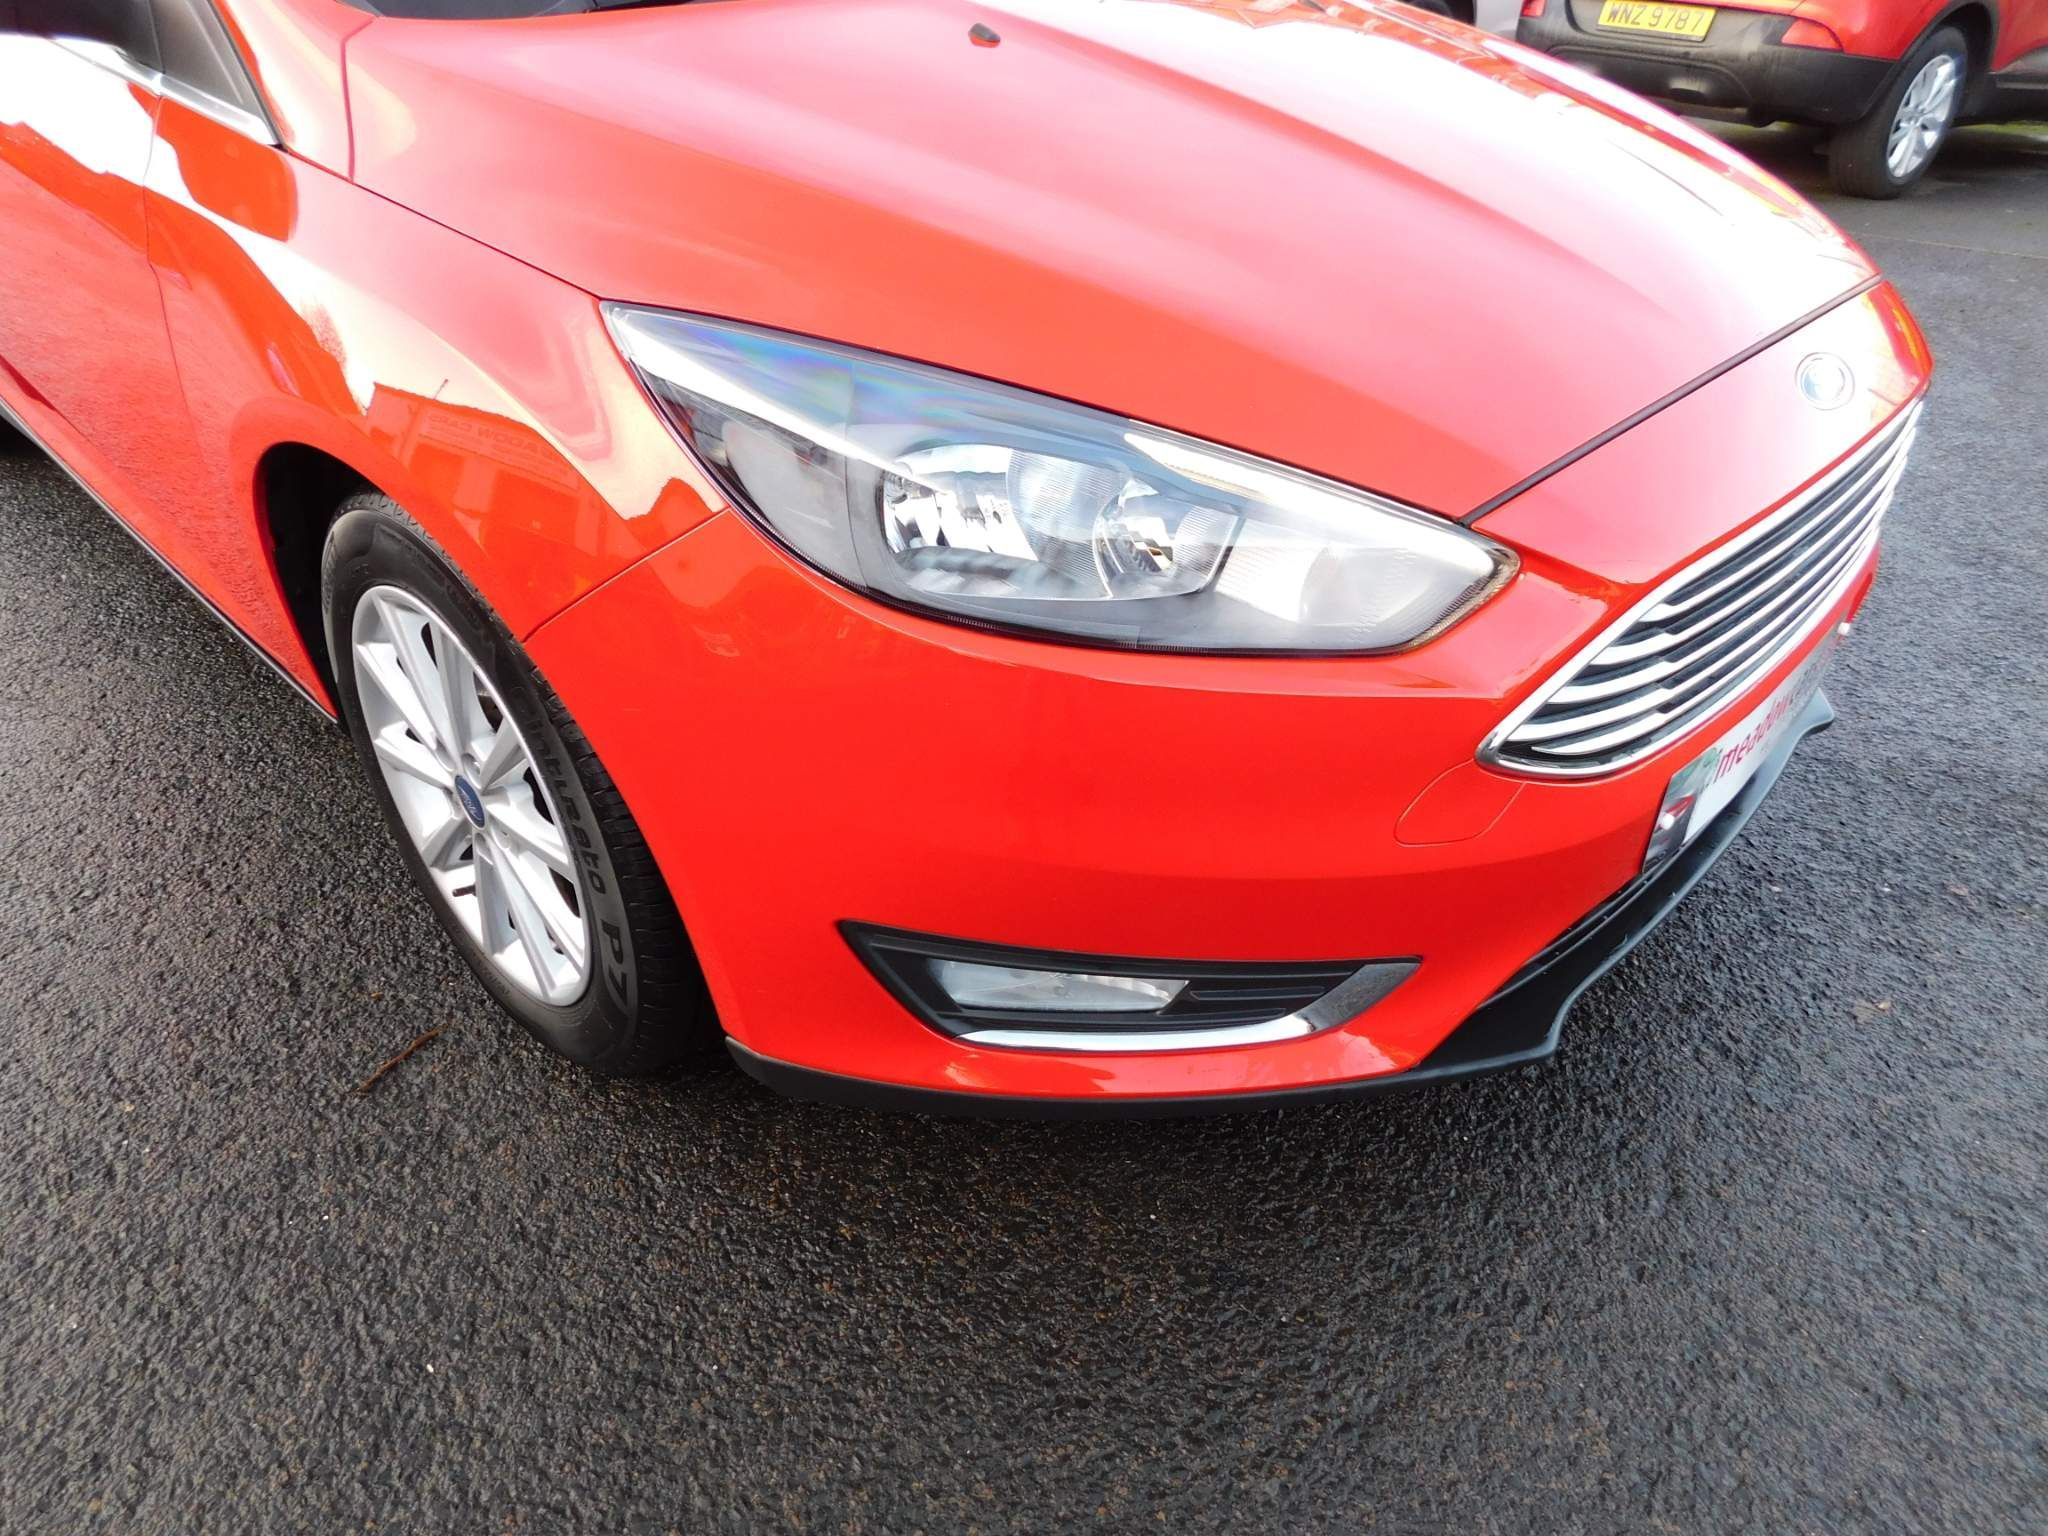 2018 FORD Focus 1.0T EcoBoost Titanium (s/s) Petrol Manual just arrived – Meadow Cars Carrickfergus full